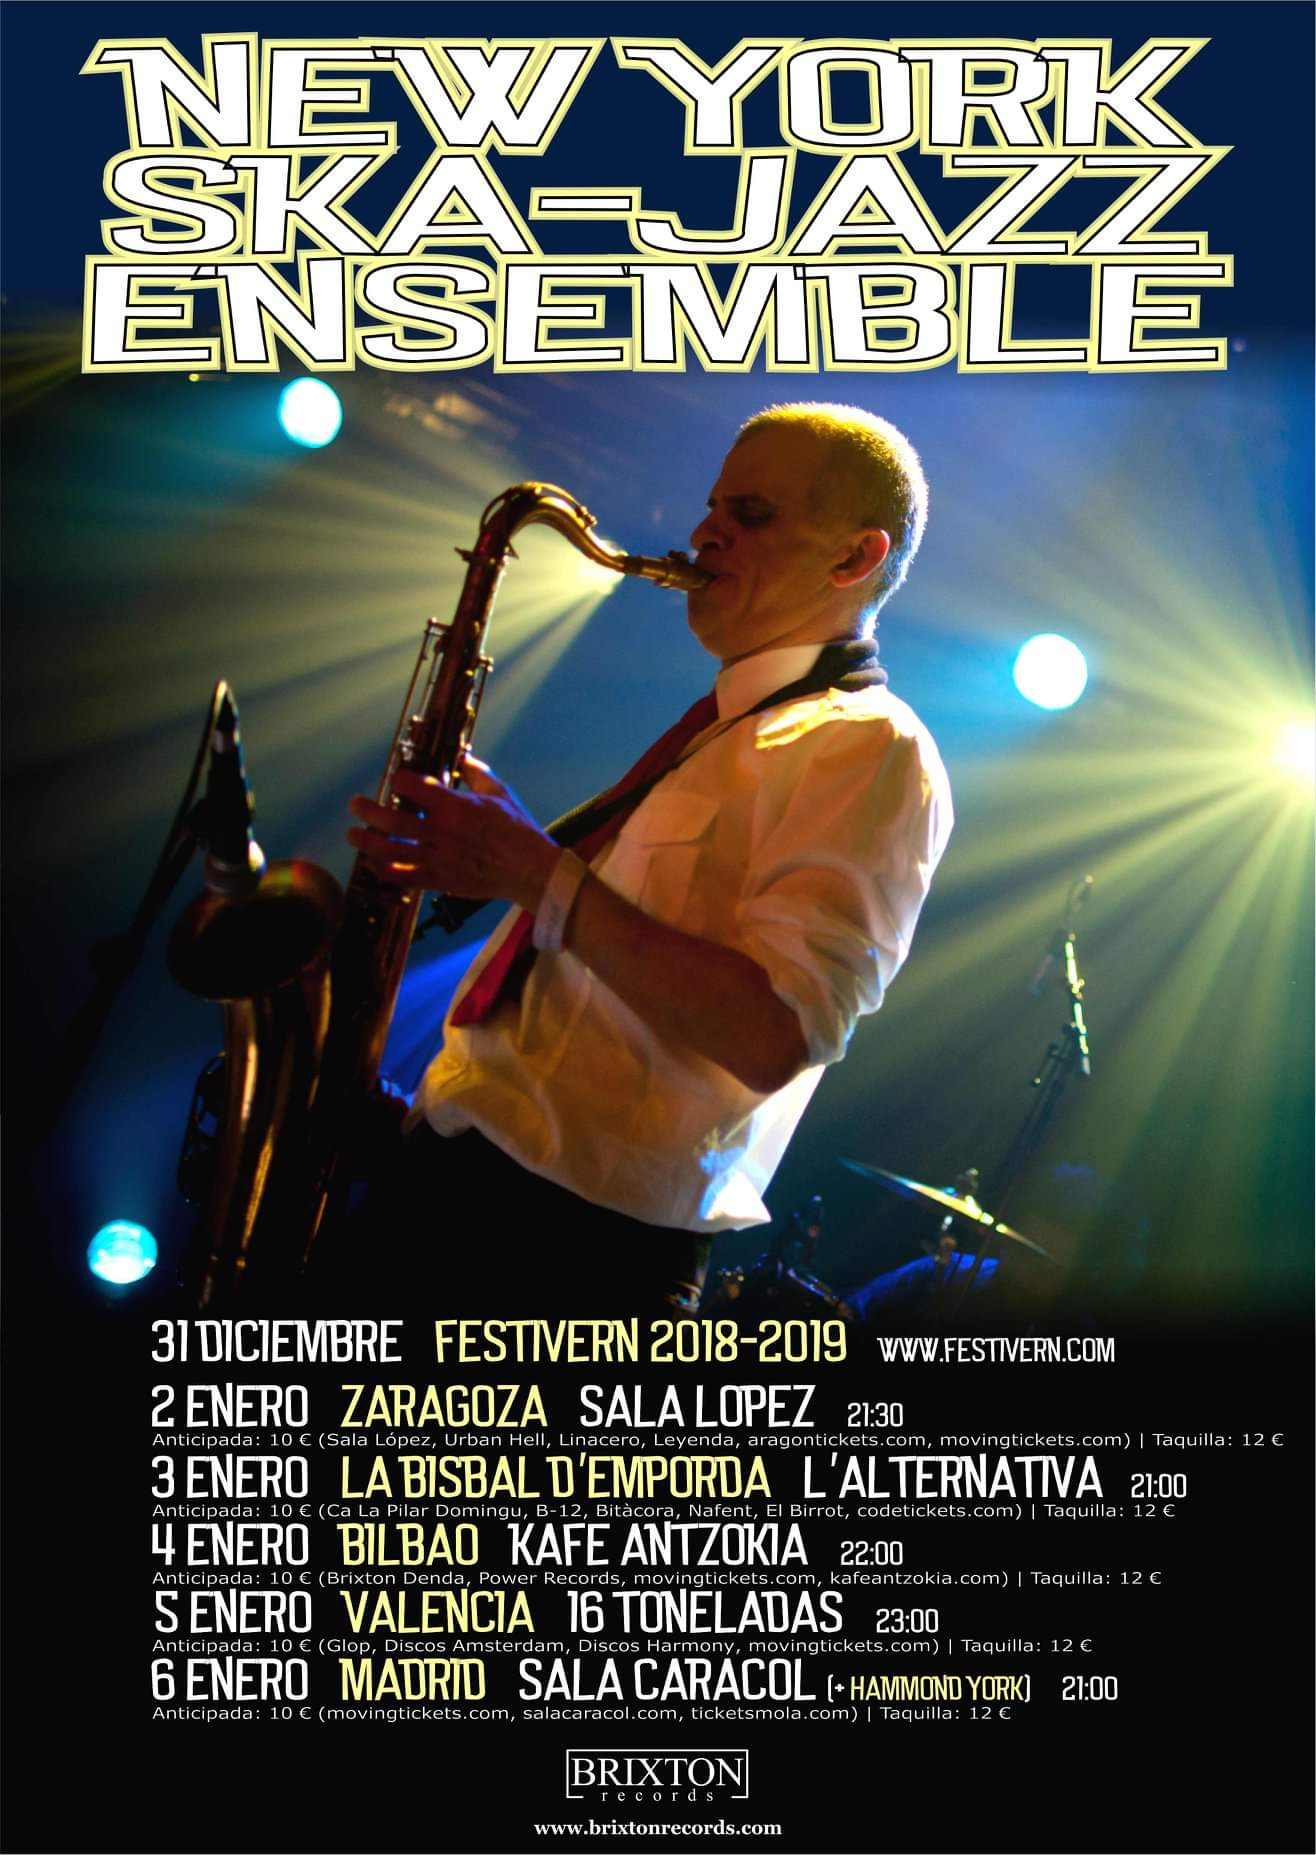 NEW YORK SKA- JAZZ ENSEMBLE 5 DE ENERO 2019 16 TONELADAS  Fb_im182